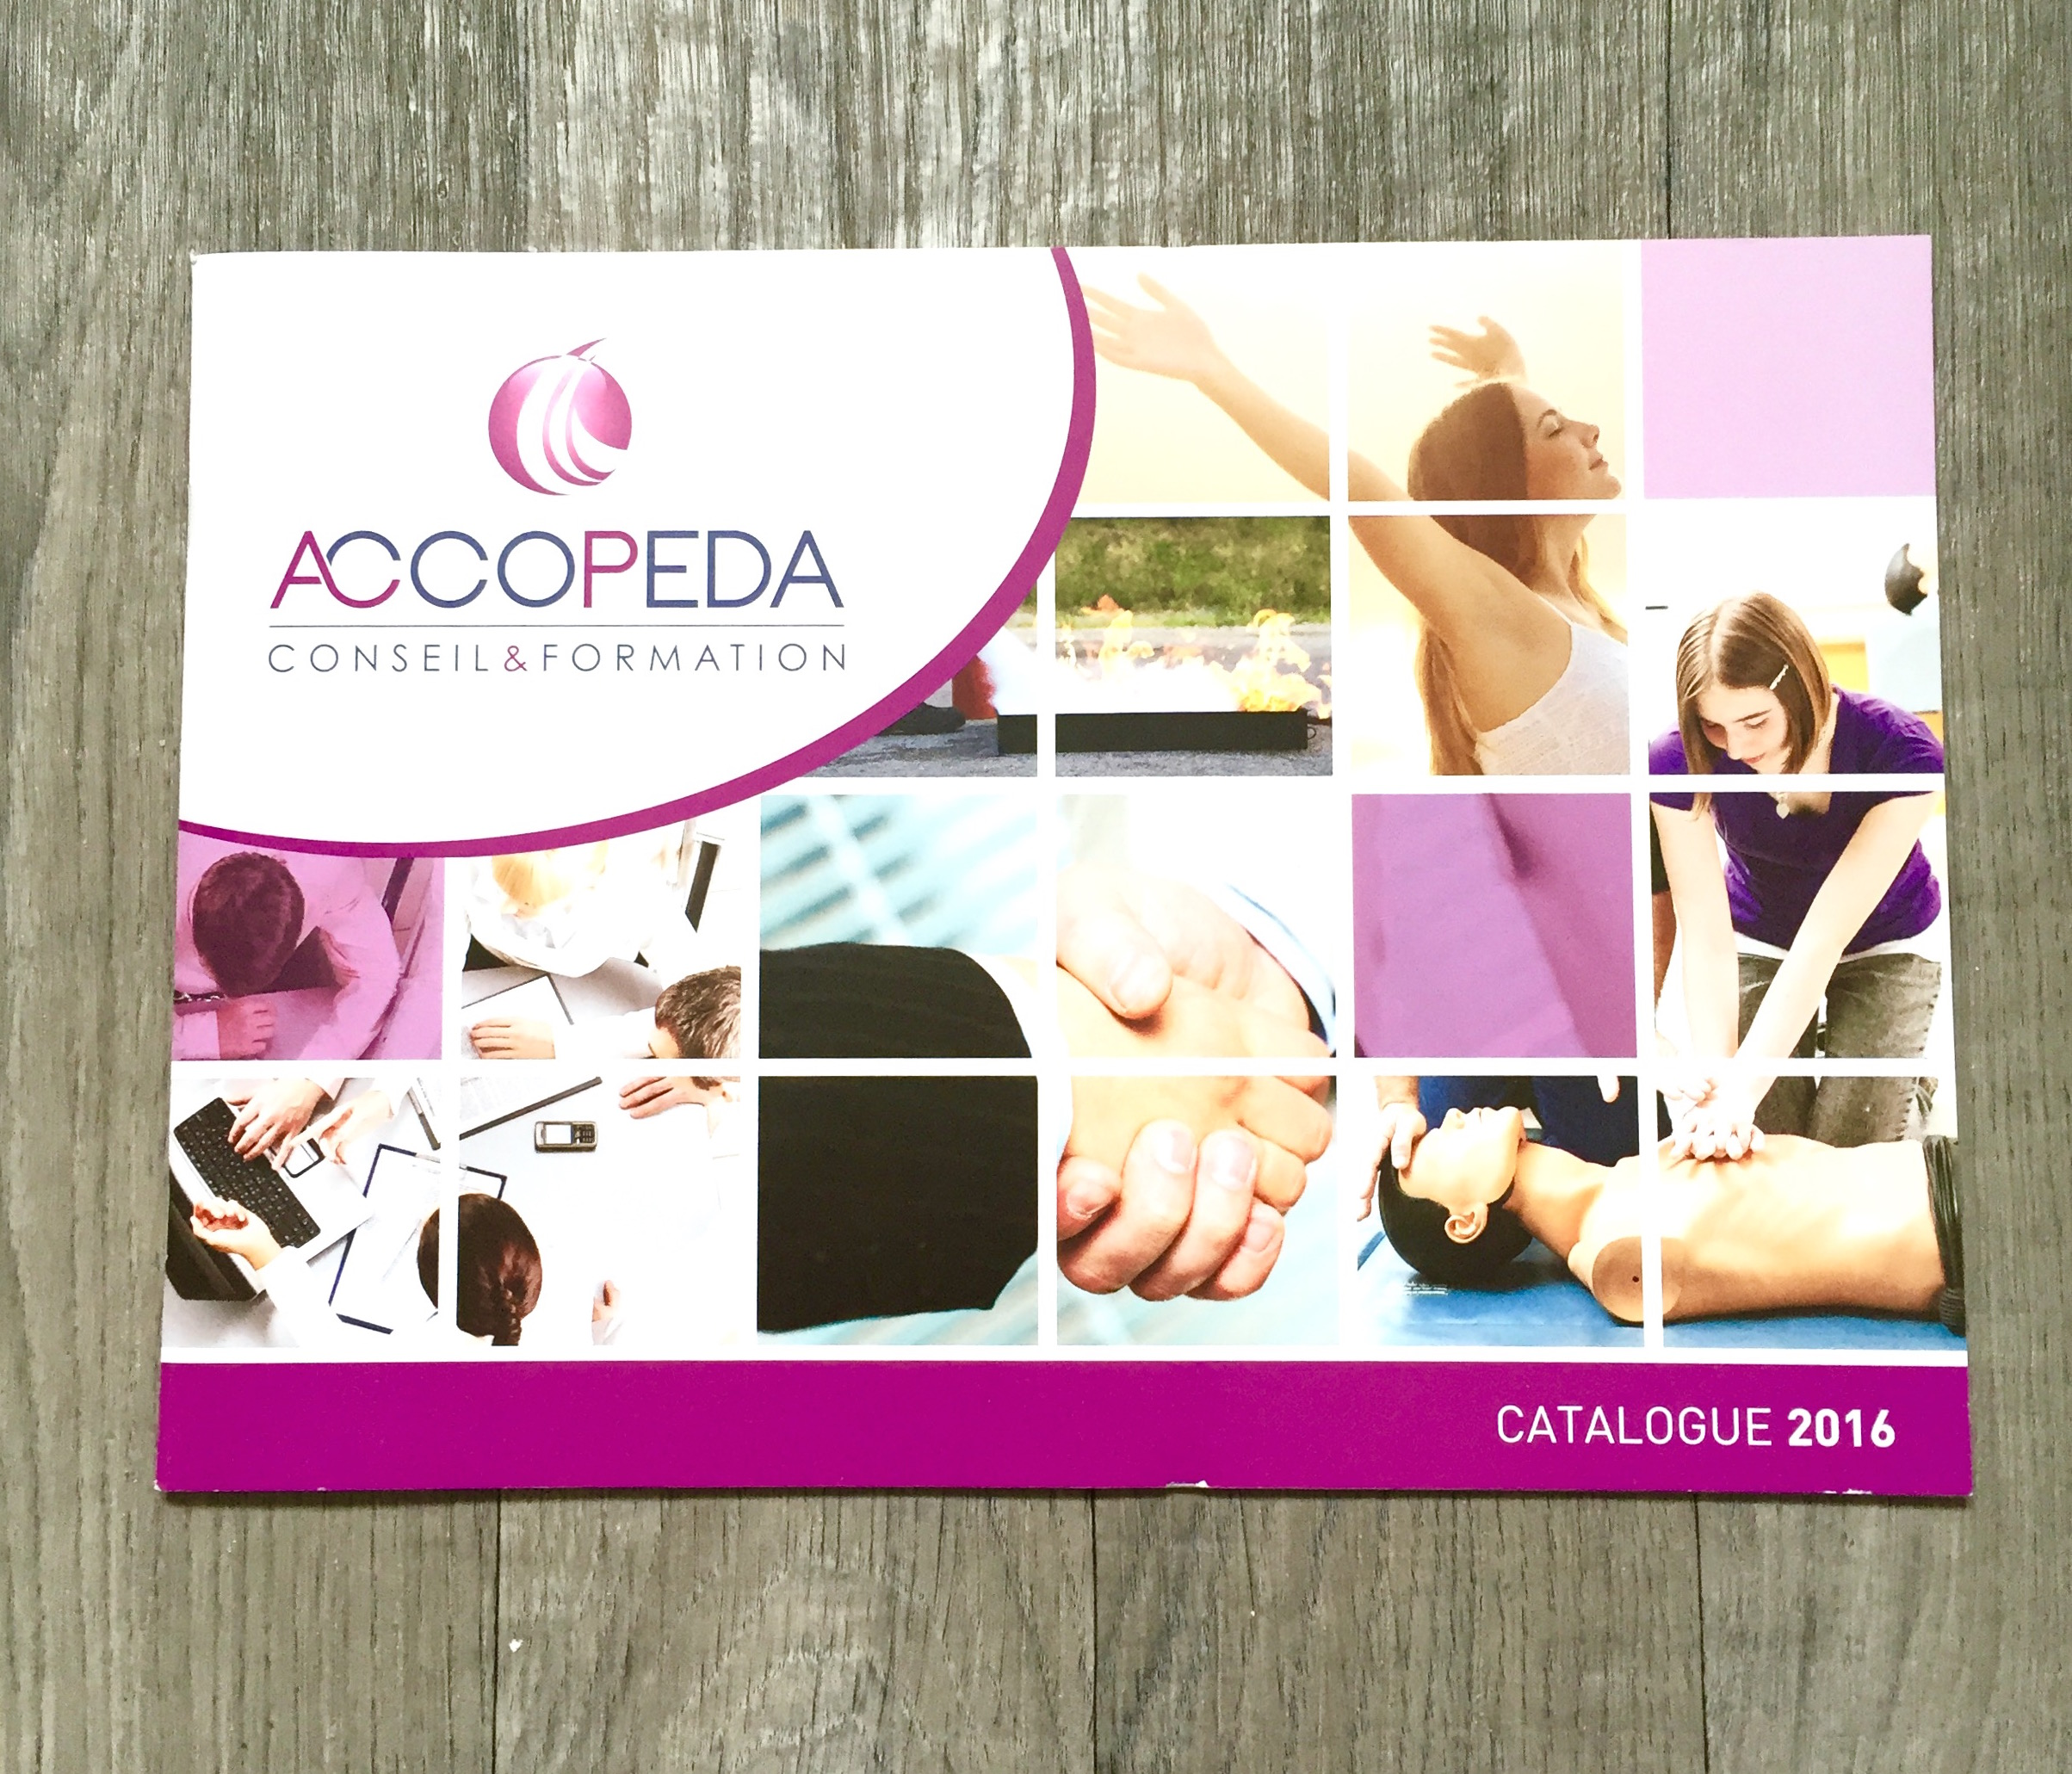 catalogue-accopeda-2016.jpg